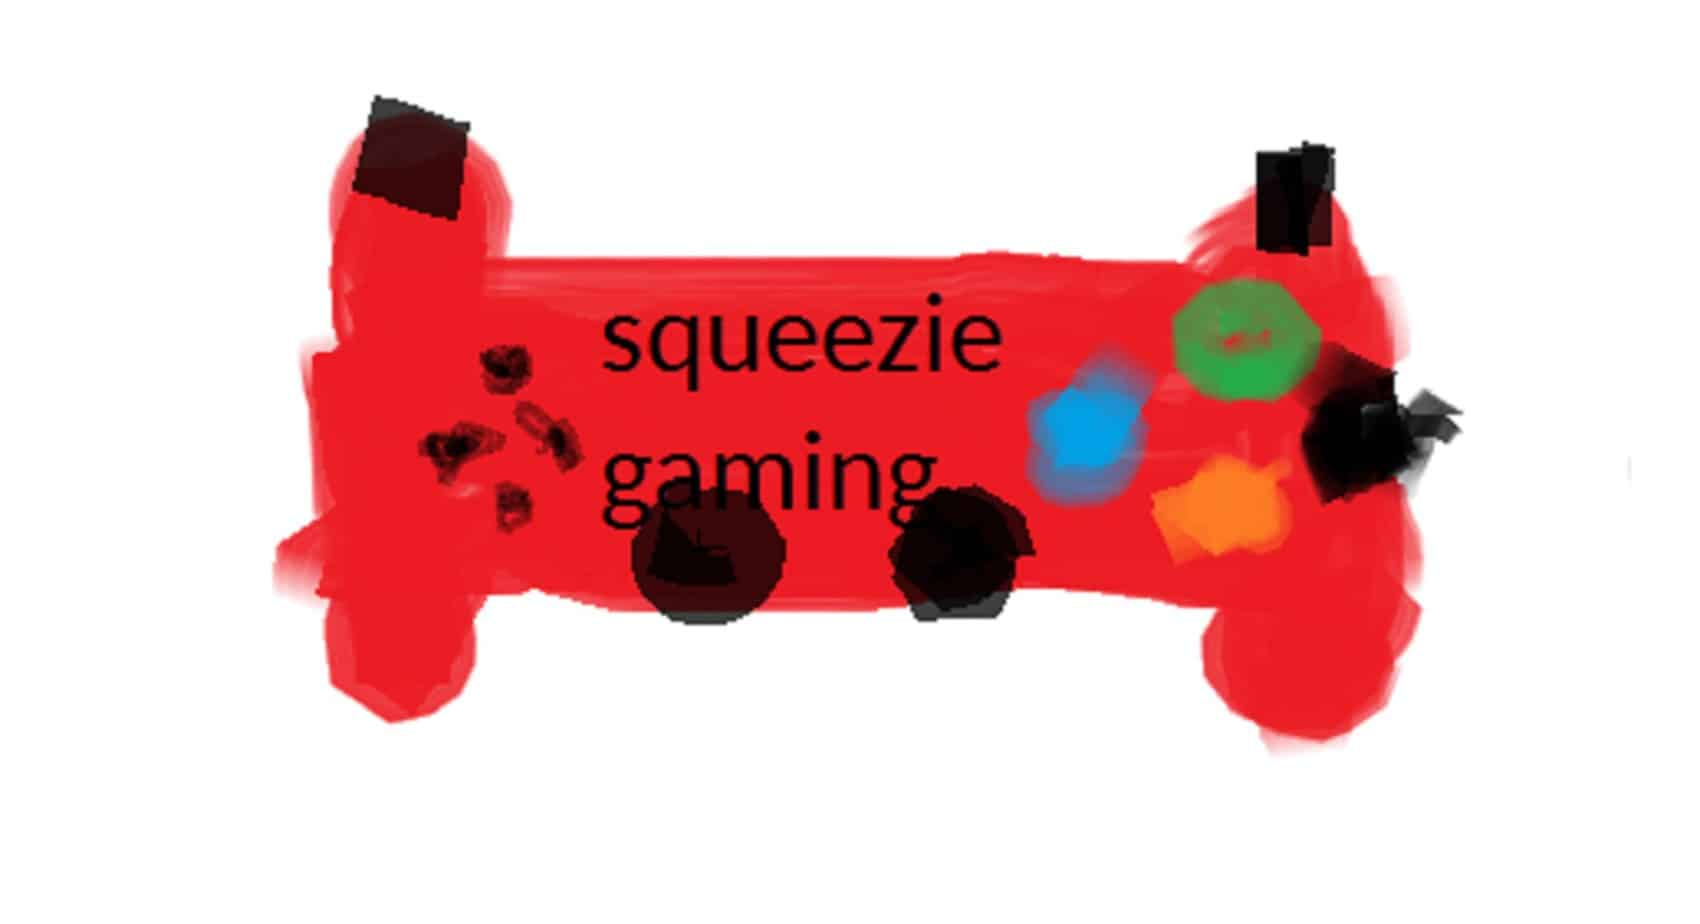 Squeezie gaming.png